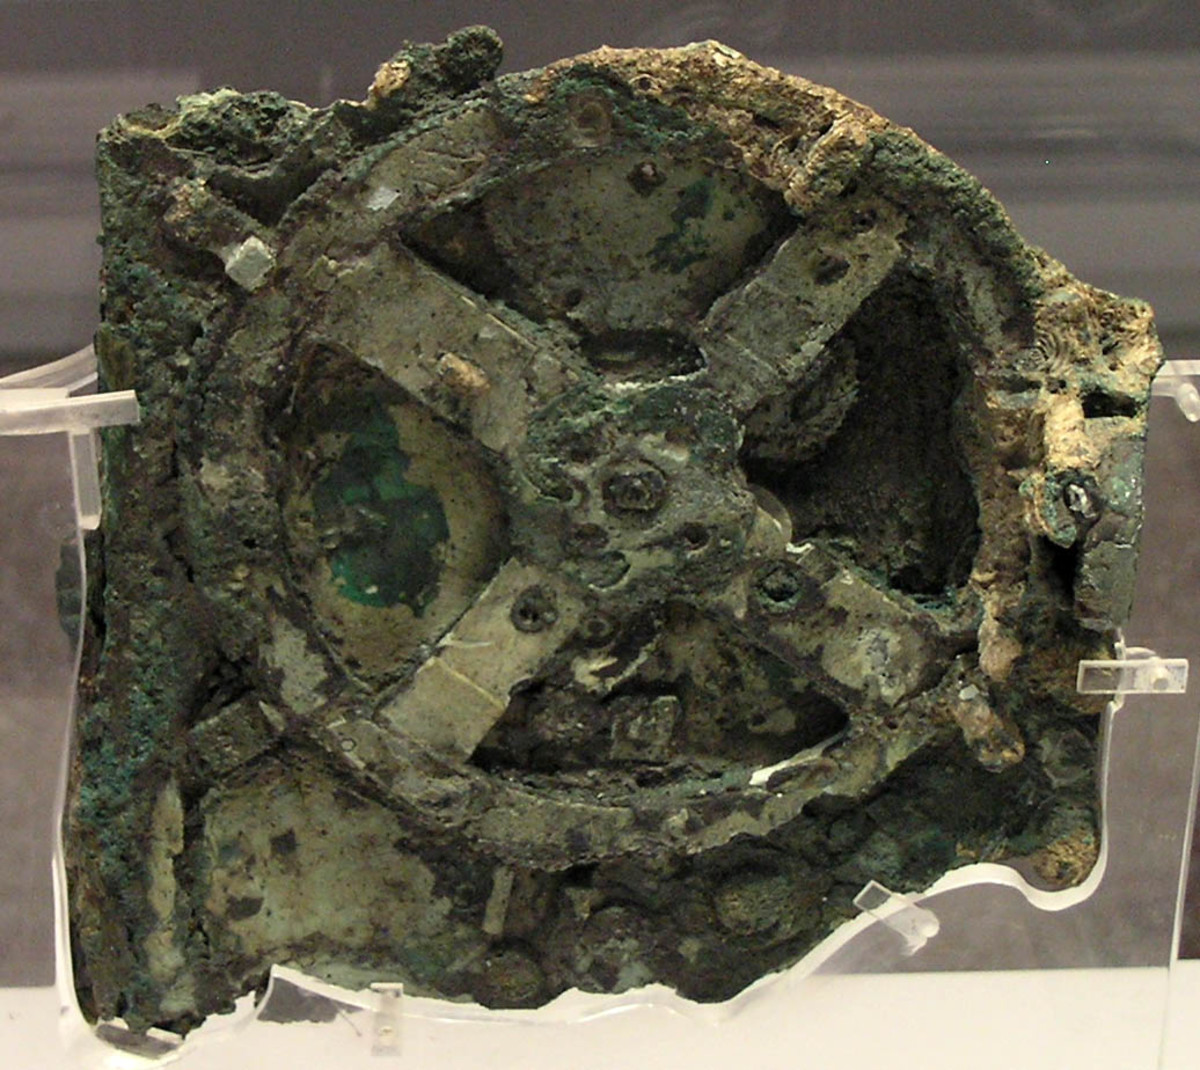 Antikythera mechanism fragment. The mechanism consists of a complex system of 32 wheels and plates with inscriptions relating to the signs of the zodiac and the months.  It is thought that this was a kind of astrolabe used for marine navigation.